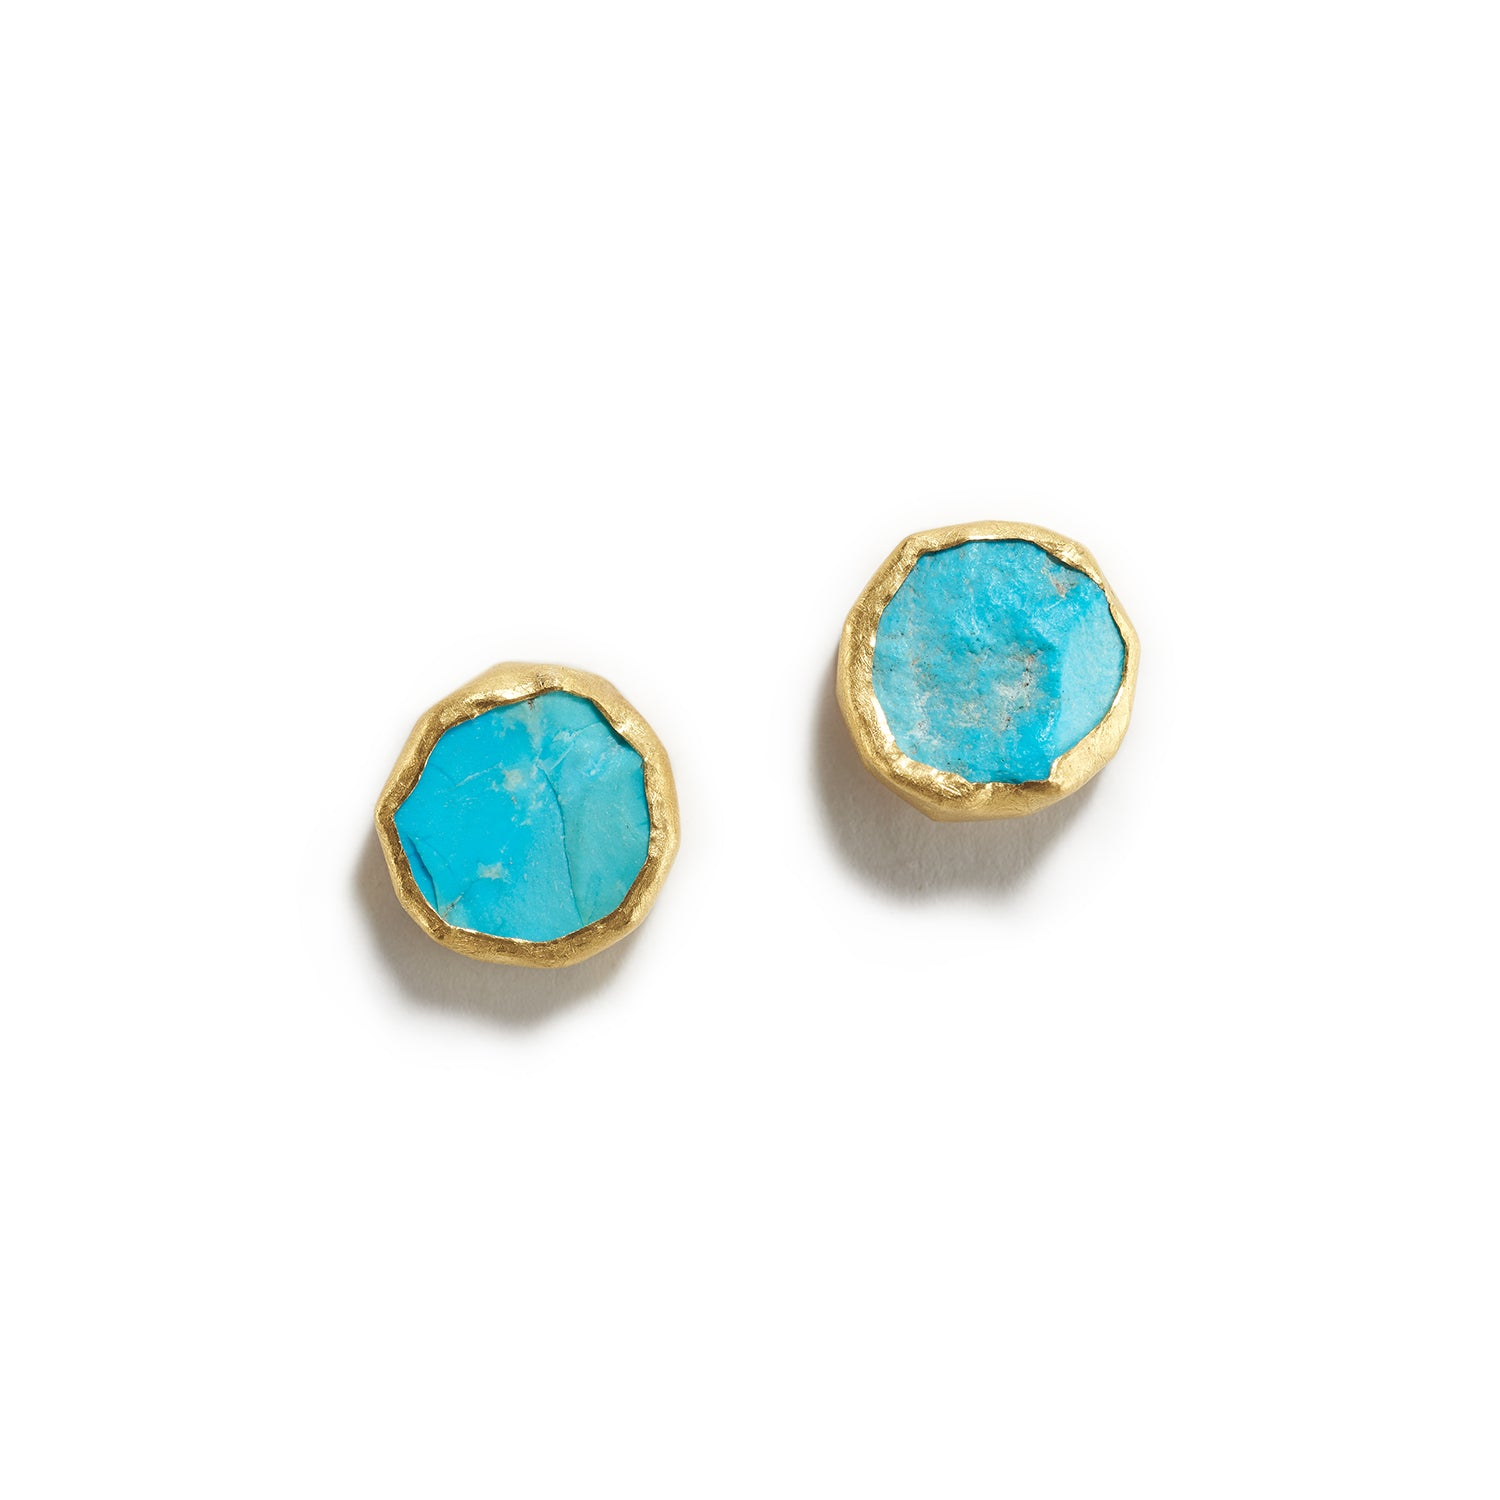 Rough Turquoise Stud Earrings